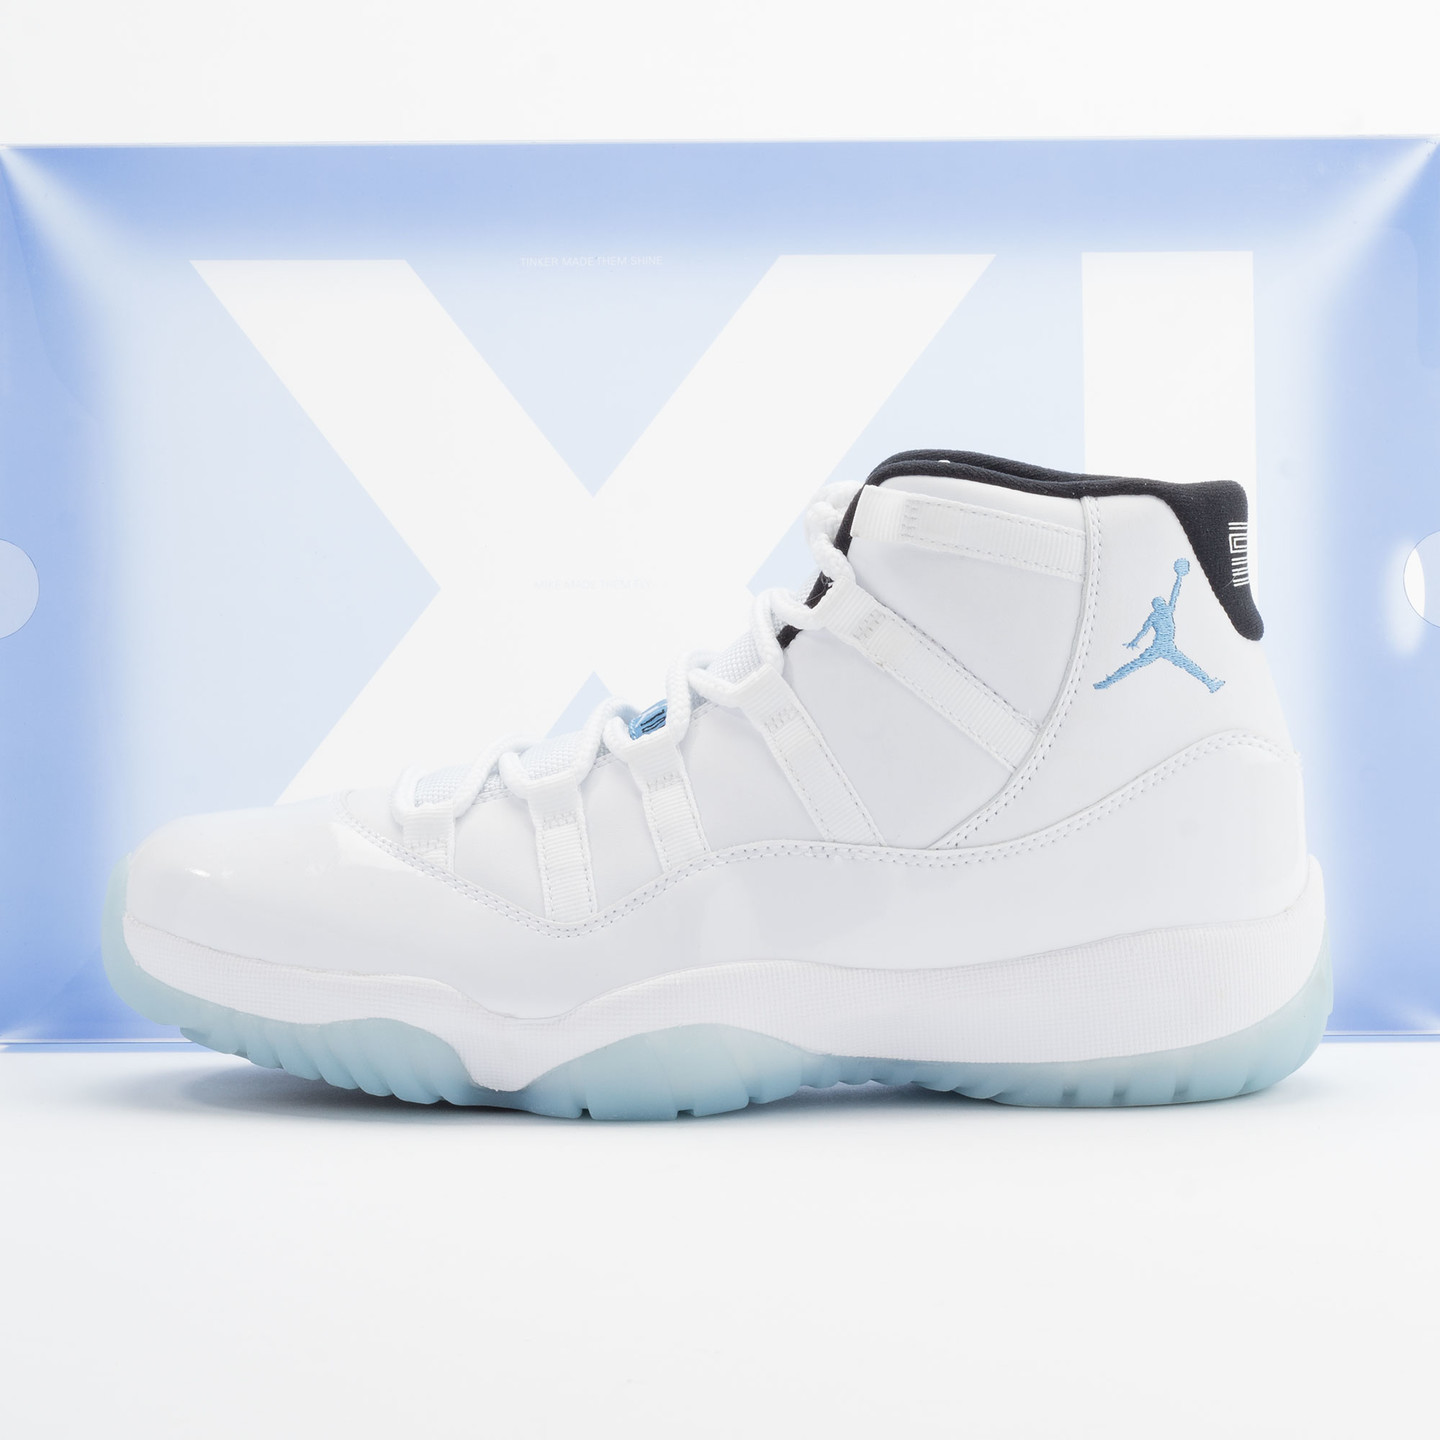 Jordan Air Jordan 11 Retro White/Legend Blue-Black 378037-117-44.5